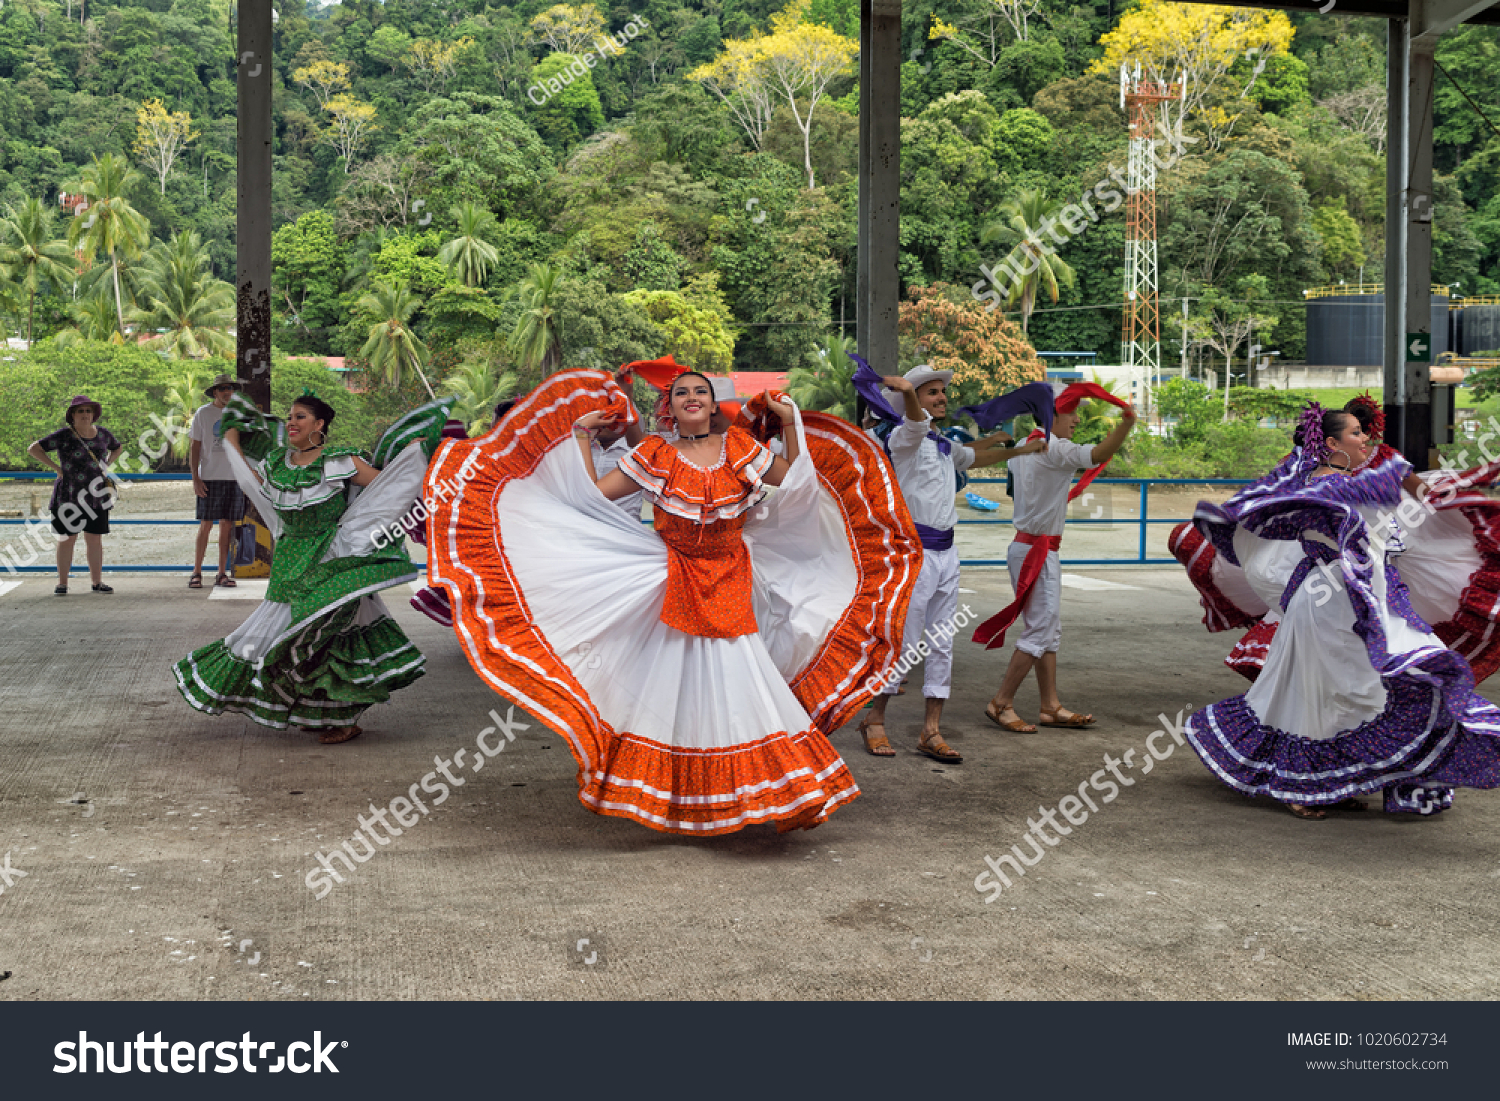 GOLFITO, COSTA RICA - JANUARY 20, 2018: Costa Rican folkloric dance troupe performs on the pier for the passengers of a cruise ship with the forest in the background.